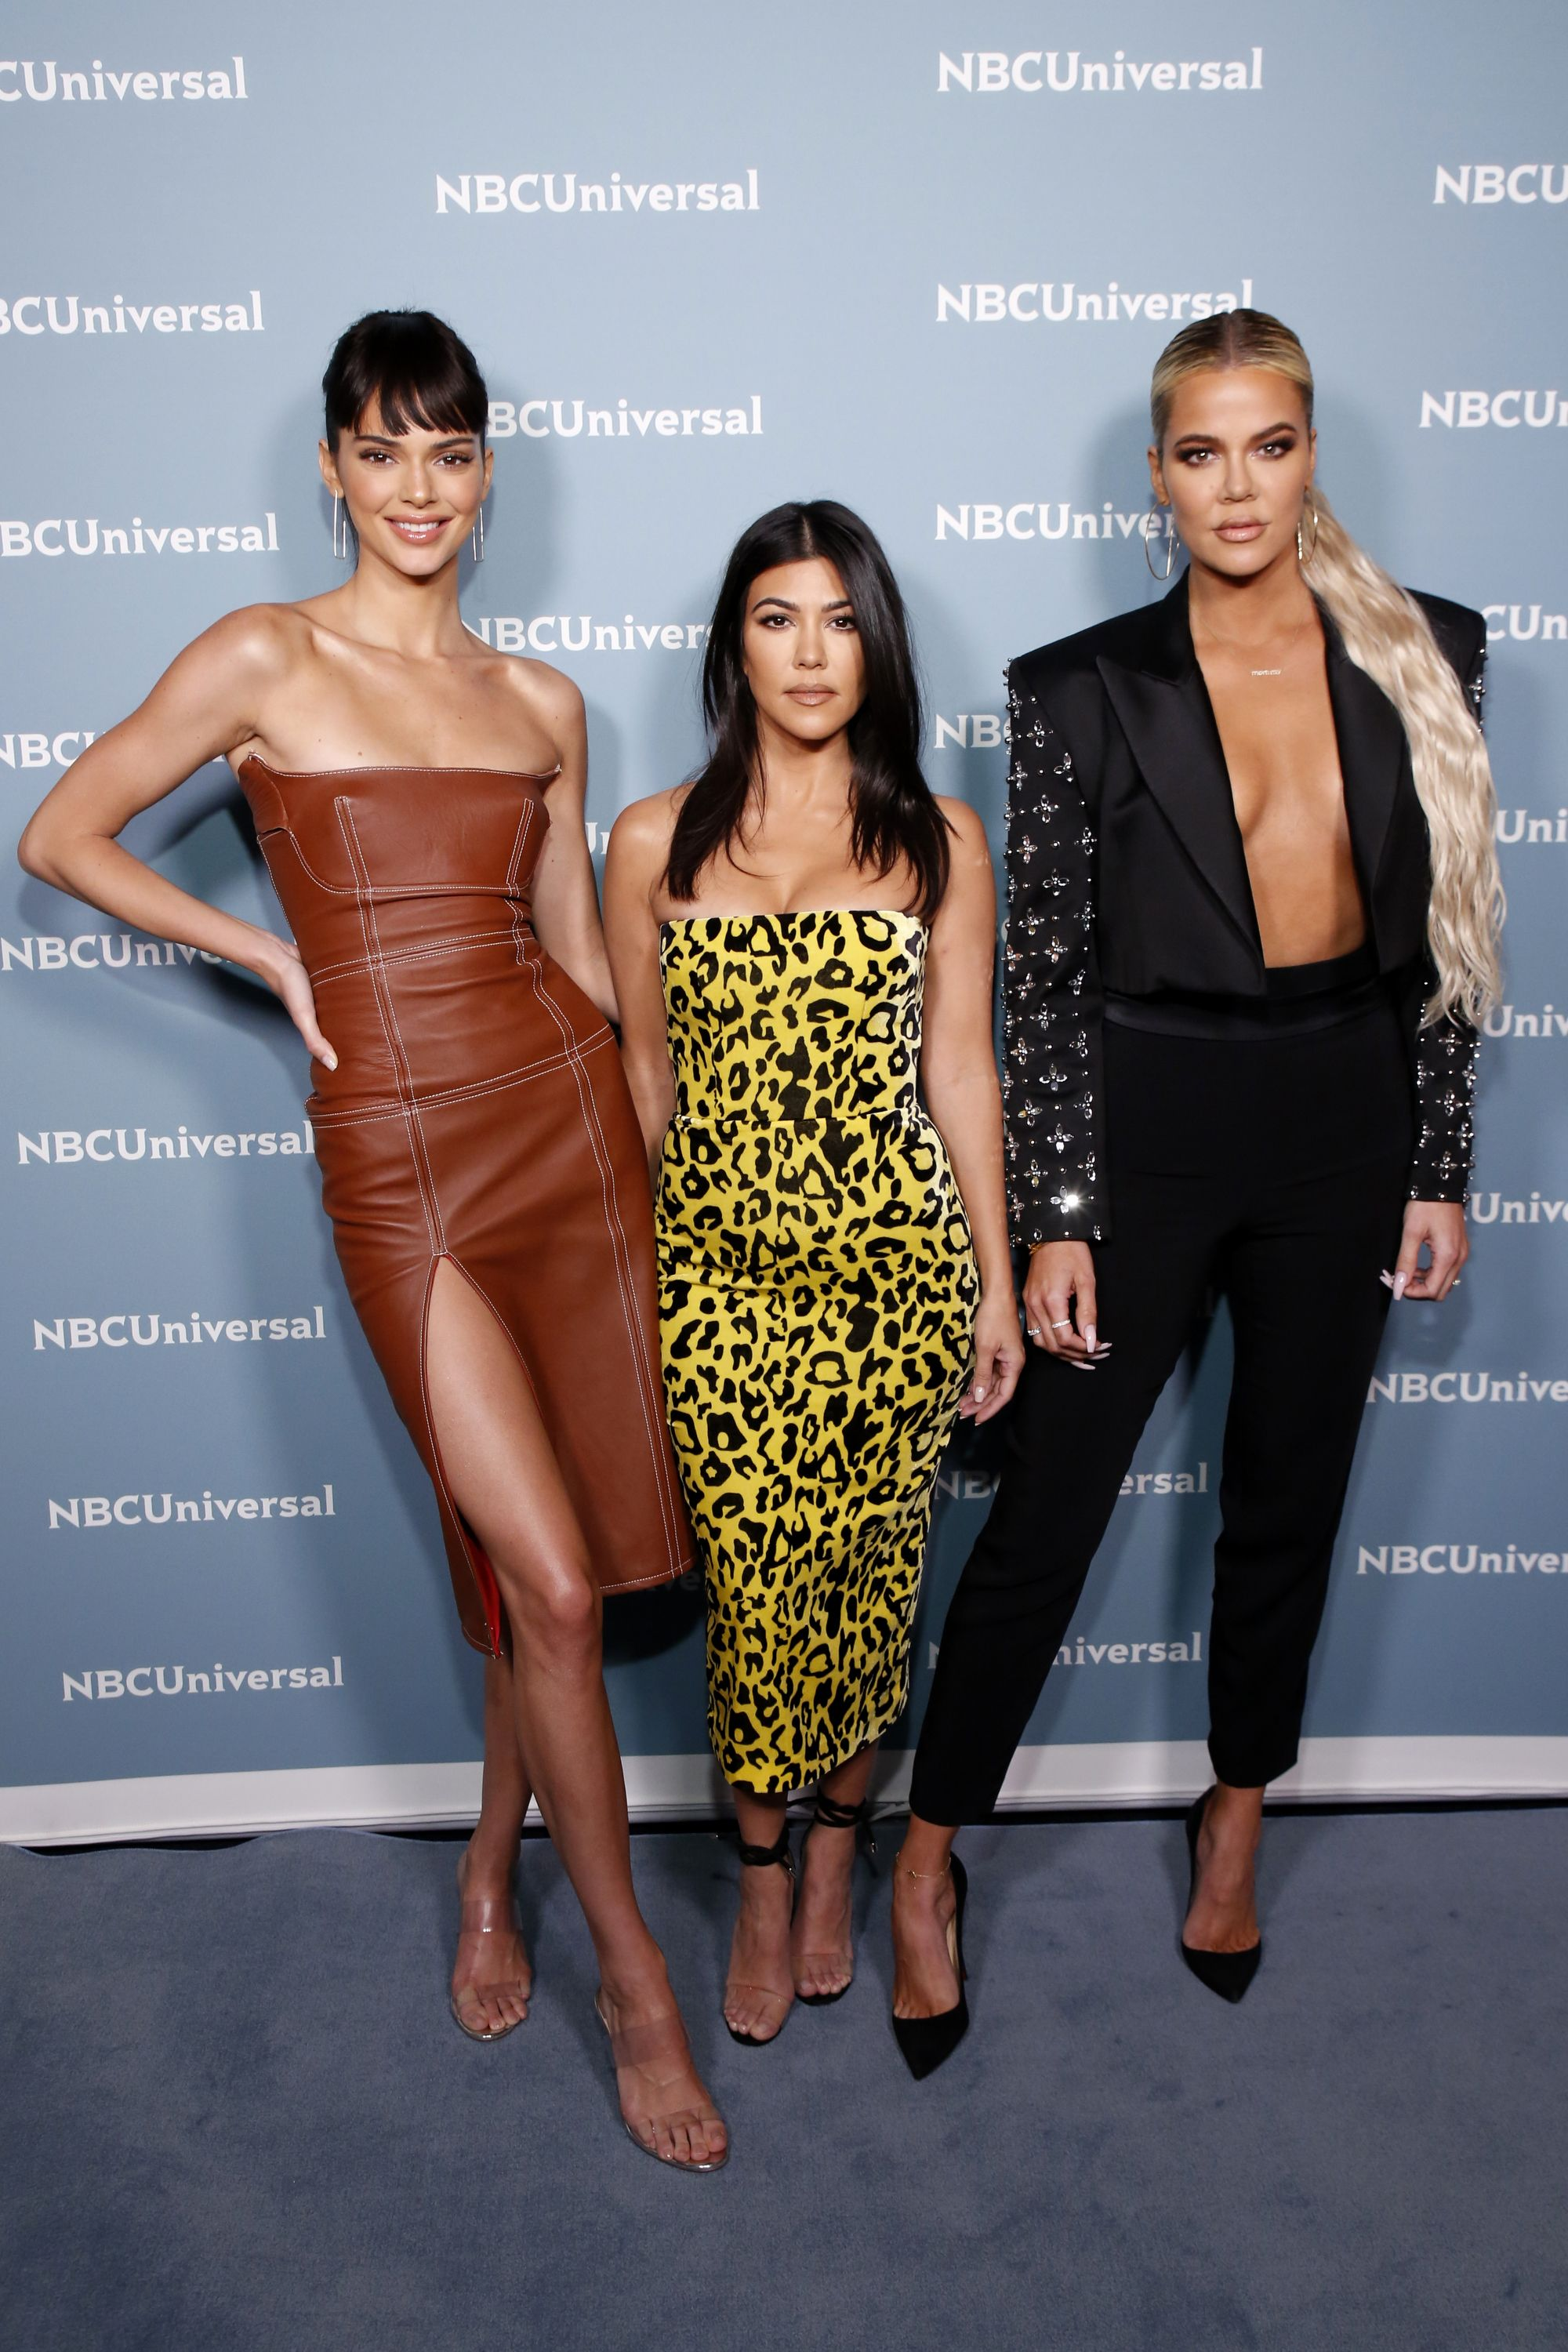 Kendall Jenner with Kourtney and Khloé at the E! Upfronts.